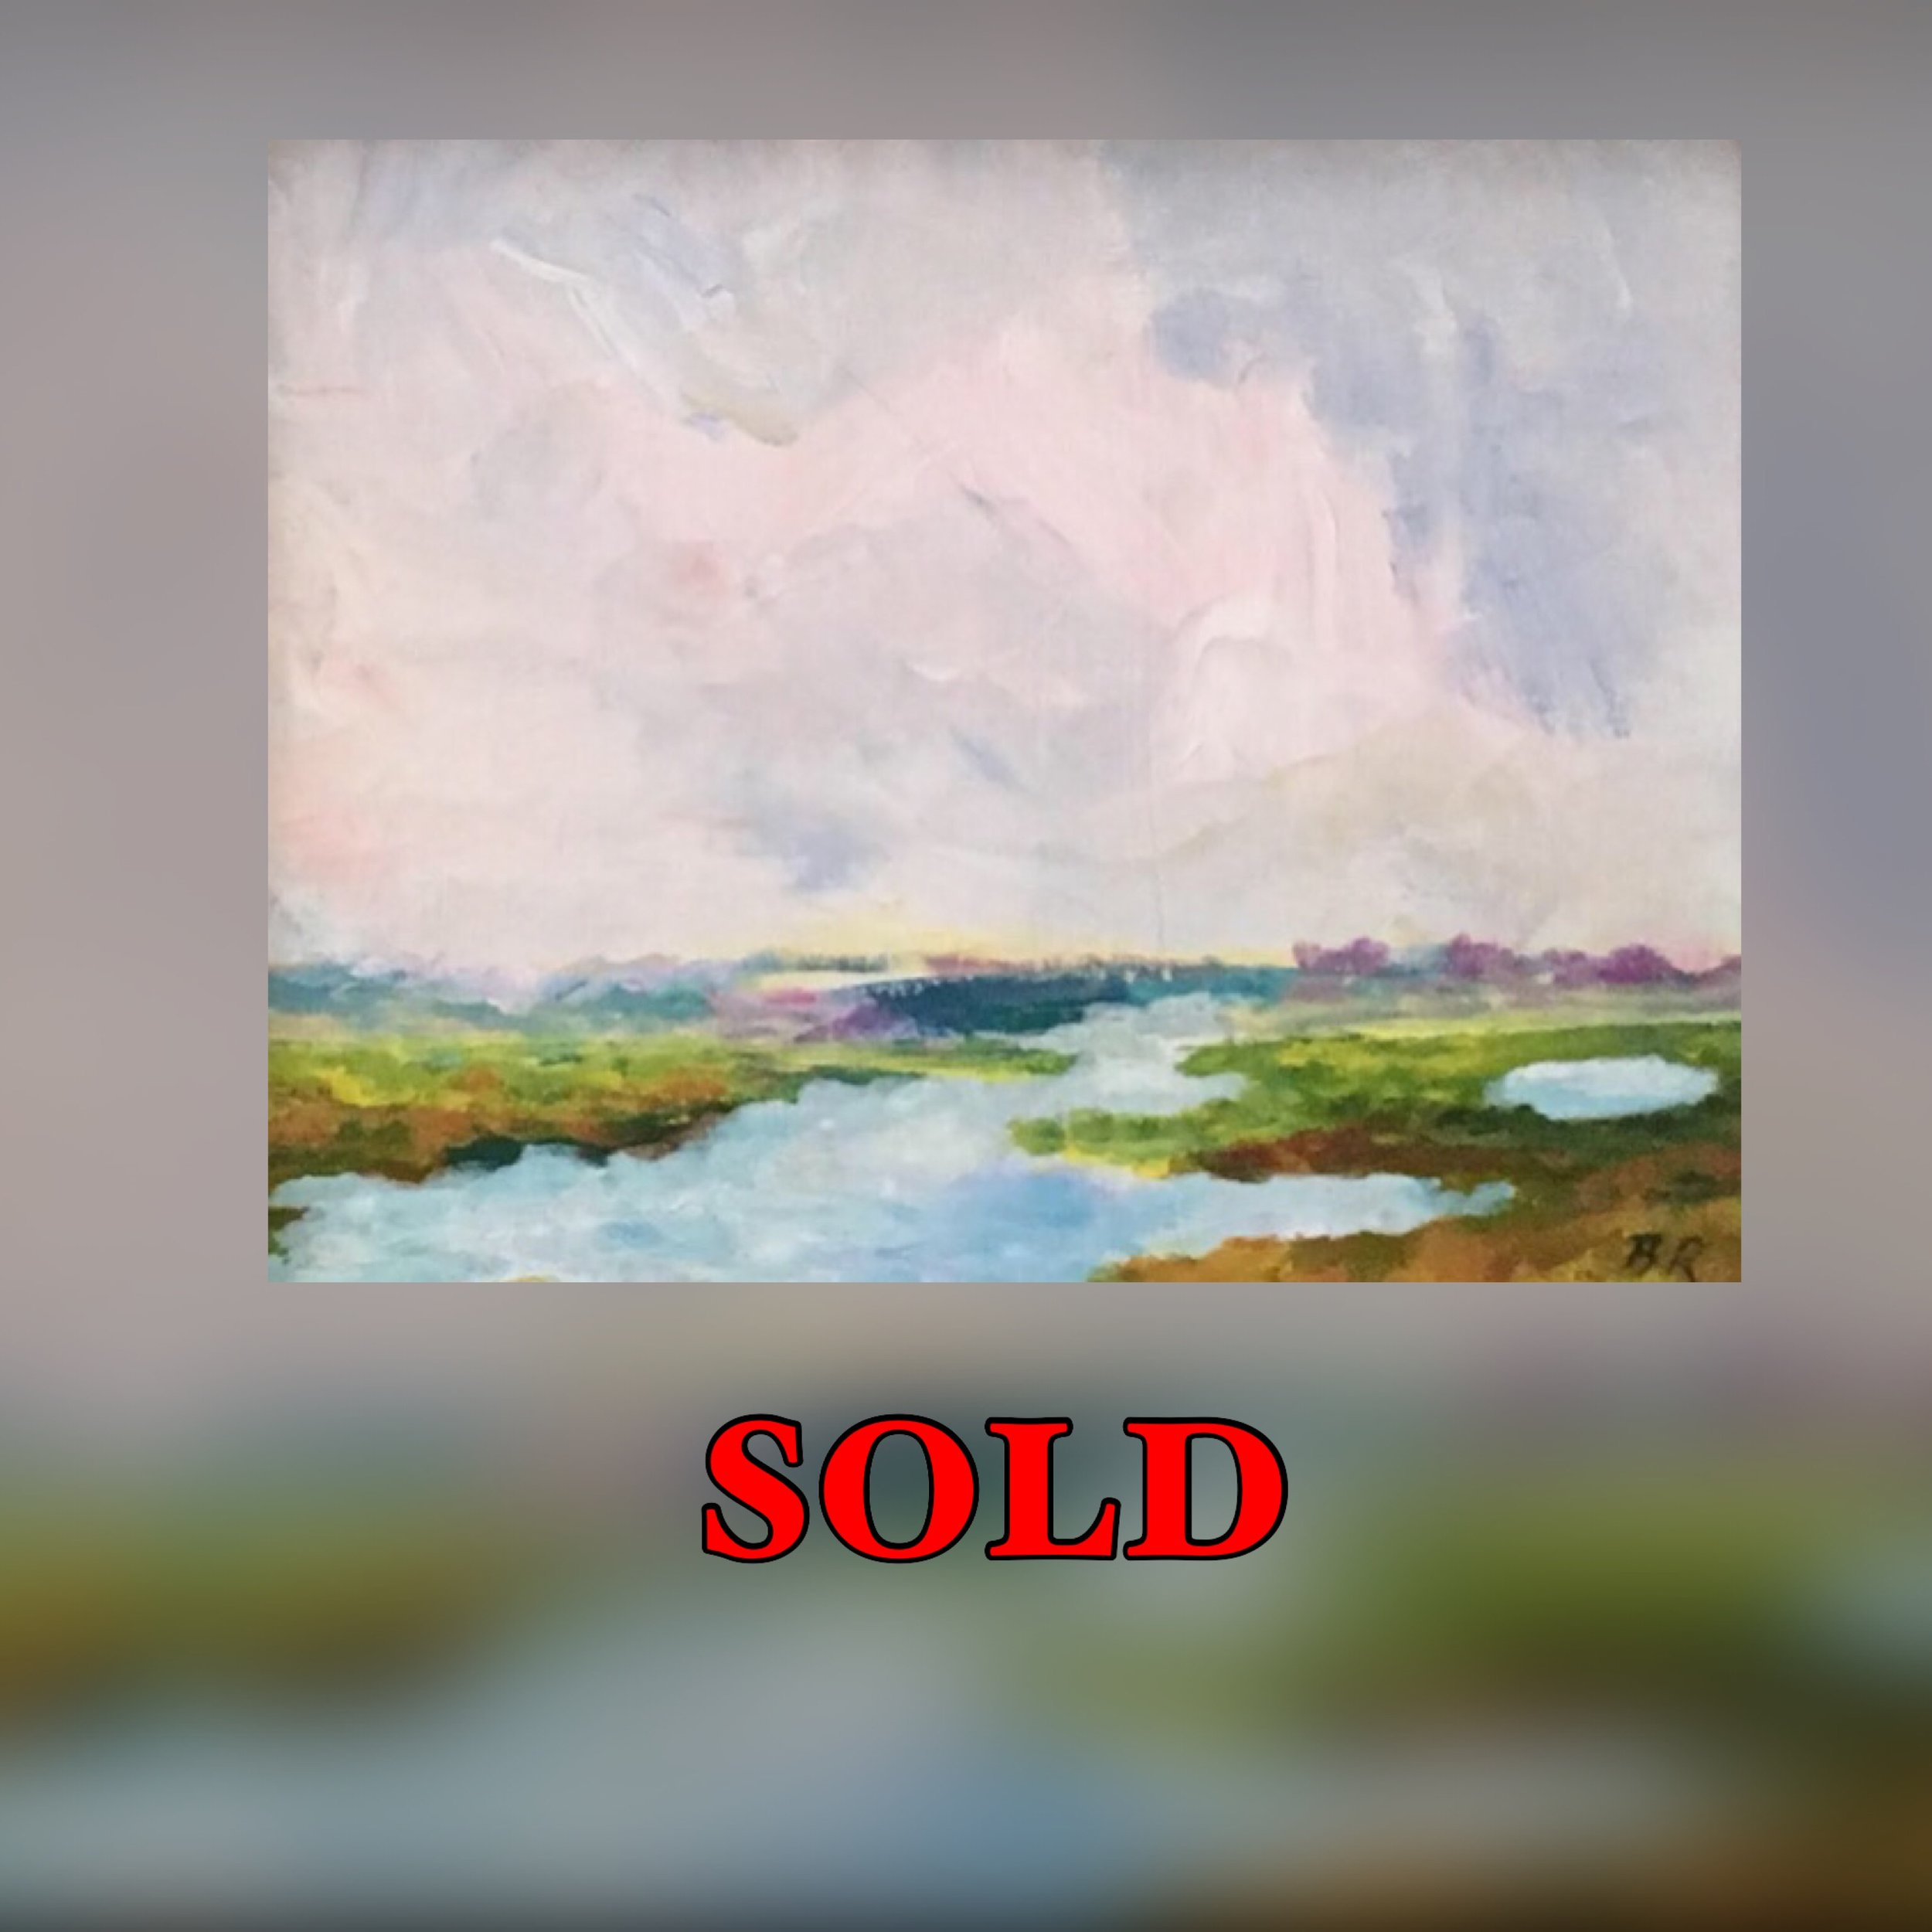 Respass County View Sold.jpg